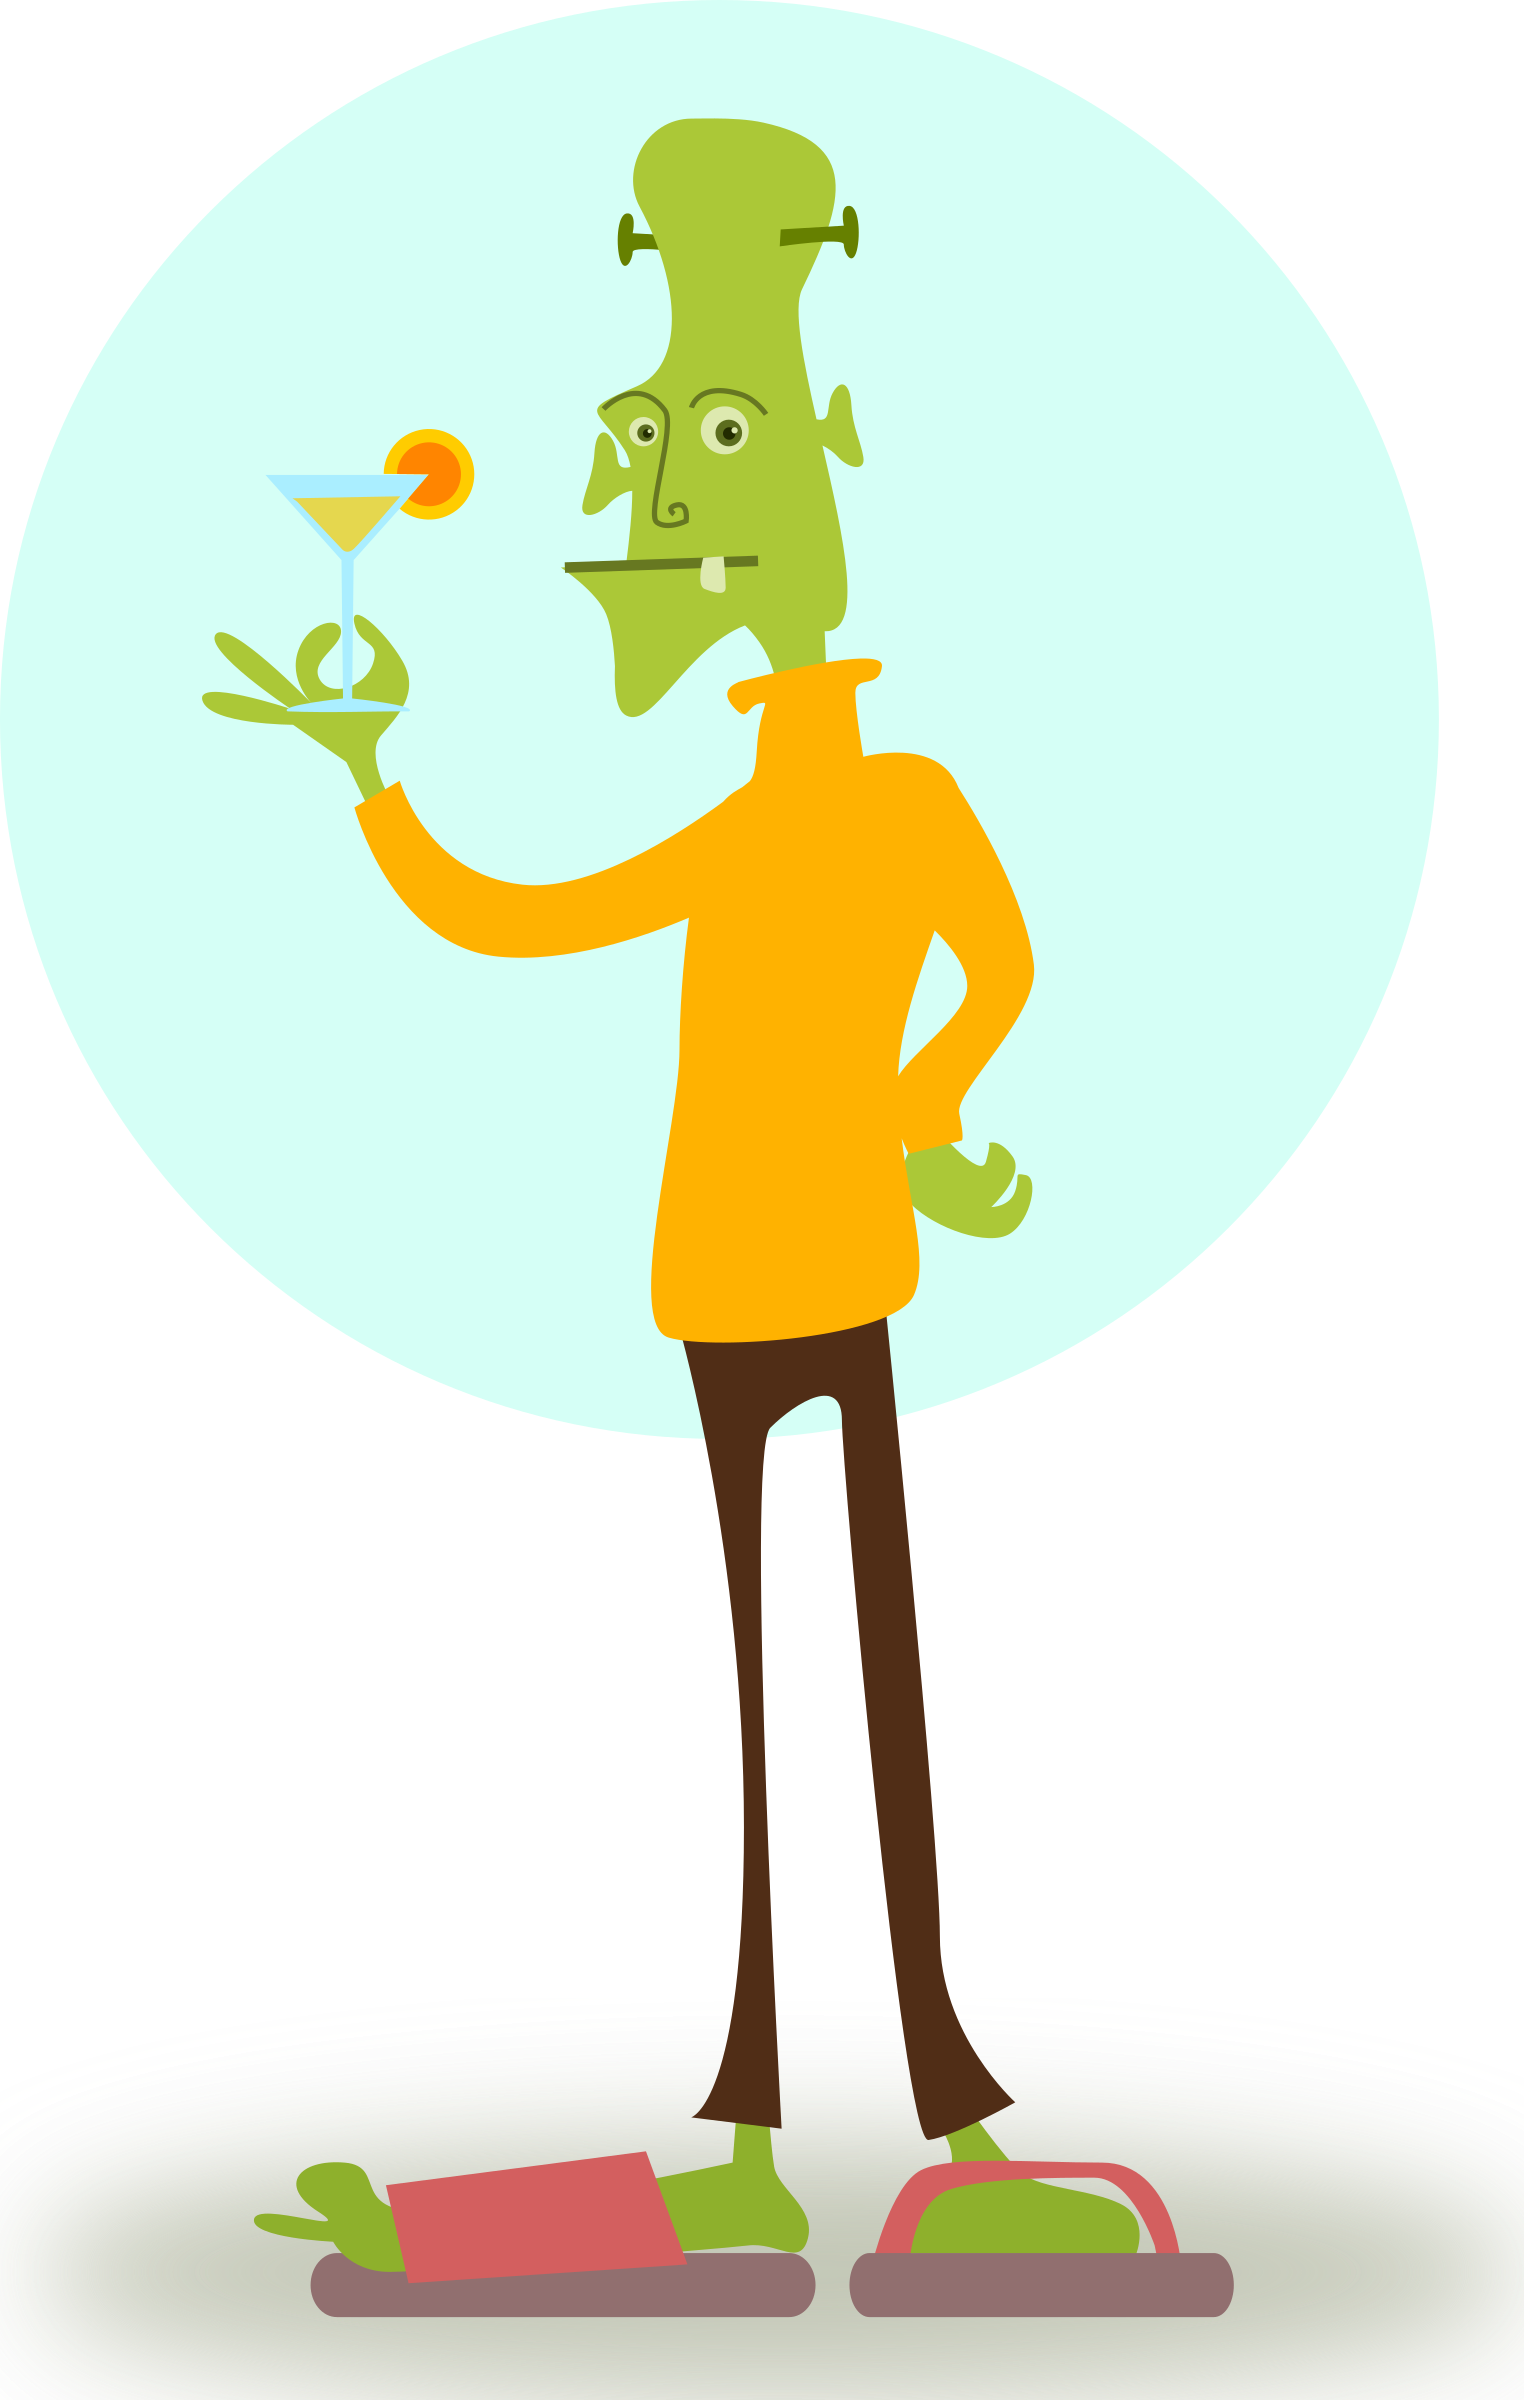 Cool clipart fashionable. Ghoul big image png